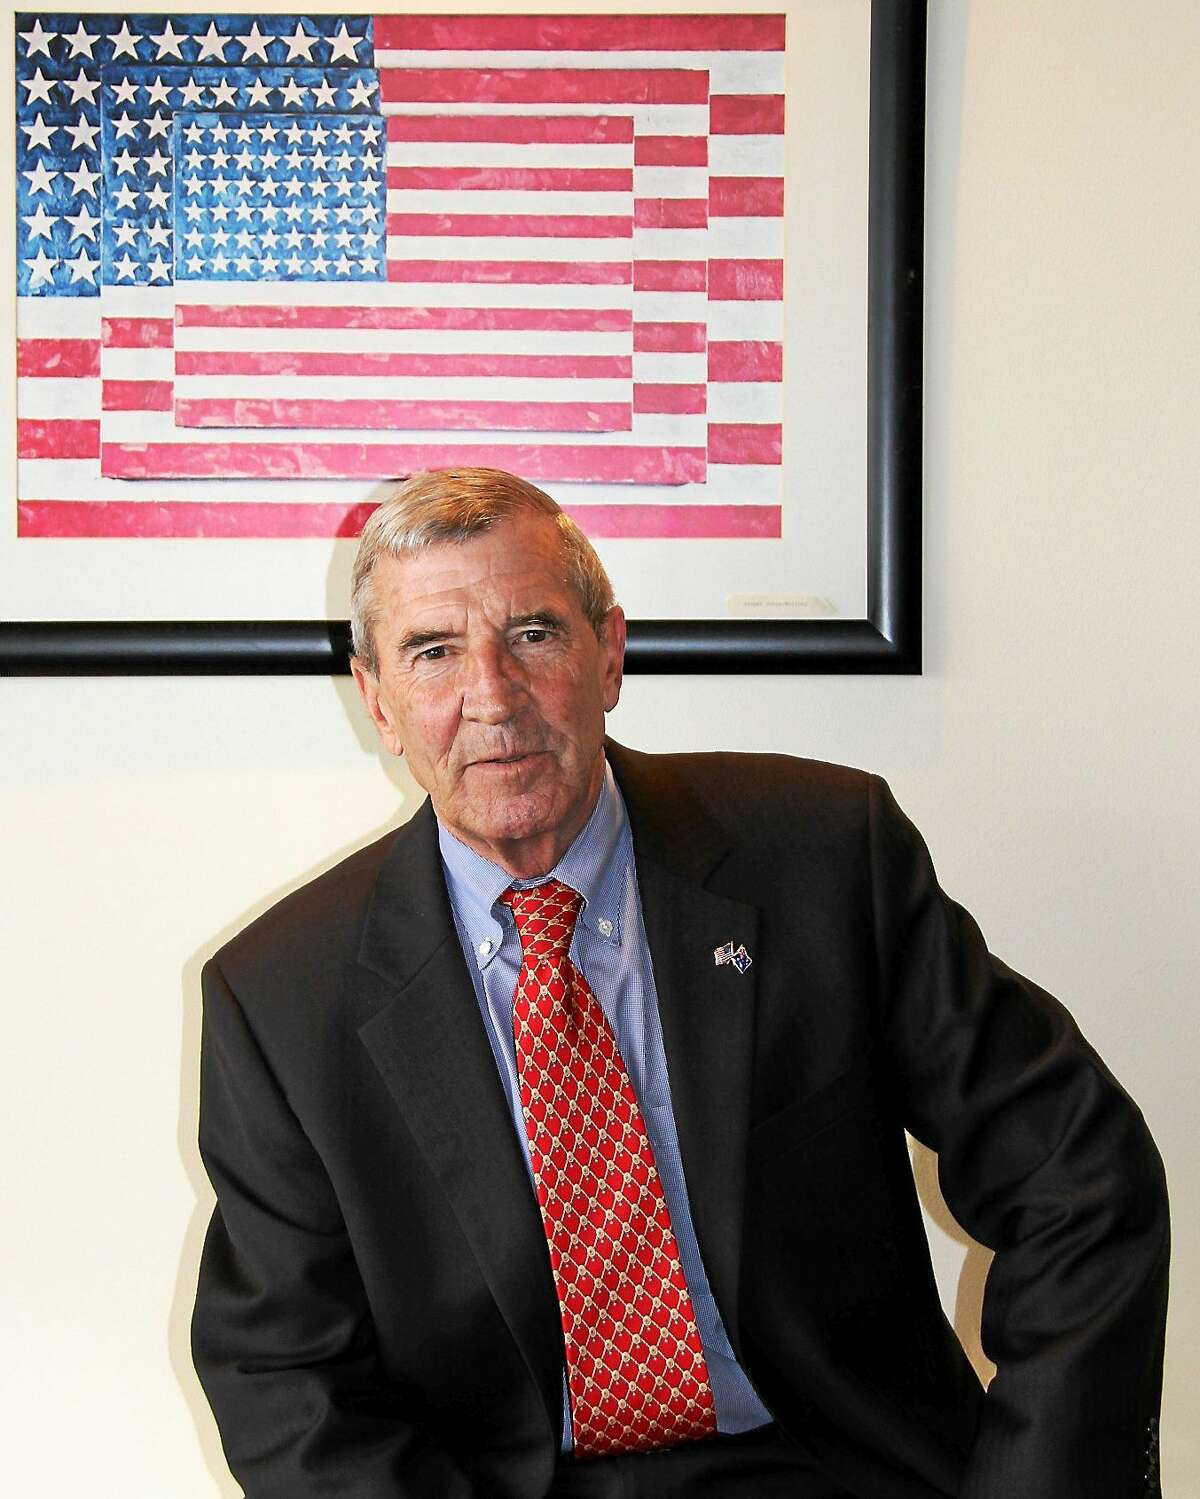 Retired Diplomat Neal Walsh will share his vision of where Africa succeeded in shedding its clichÈs of failure and where it still faces deep challenges at the Litchfield Community Center on Thursday, Feb. 5, at 7 p.m.